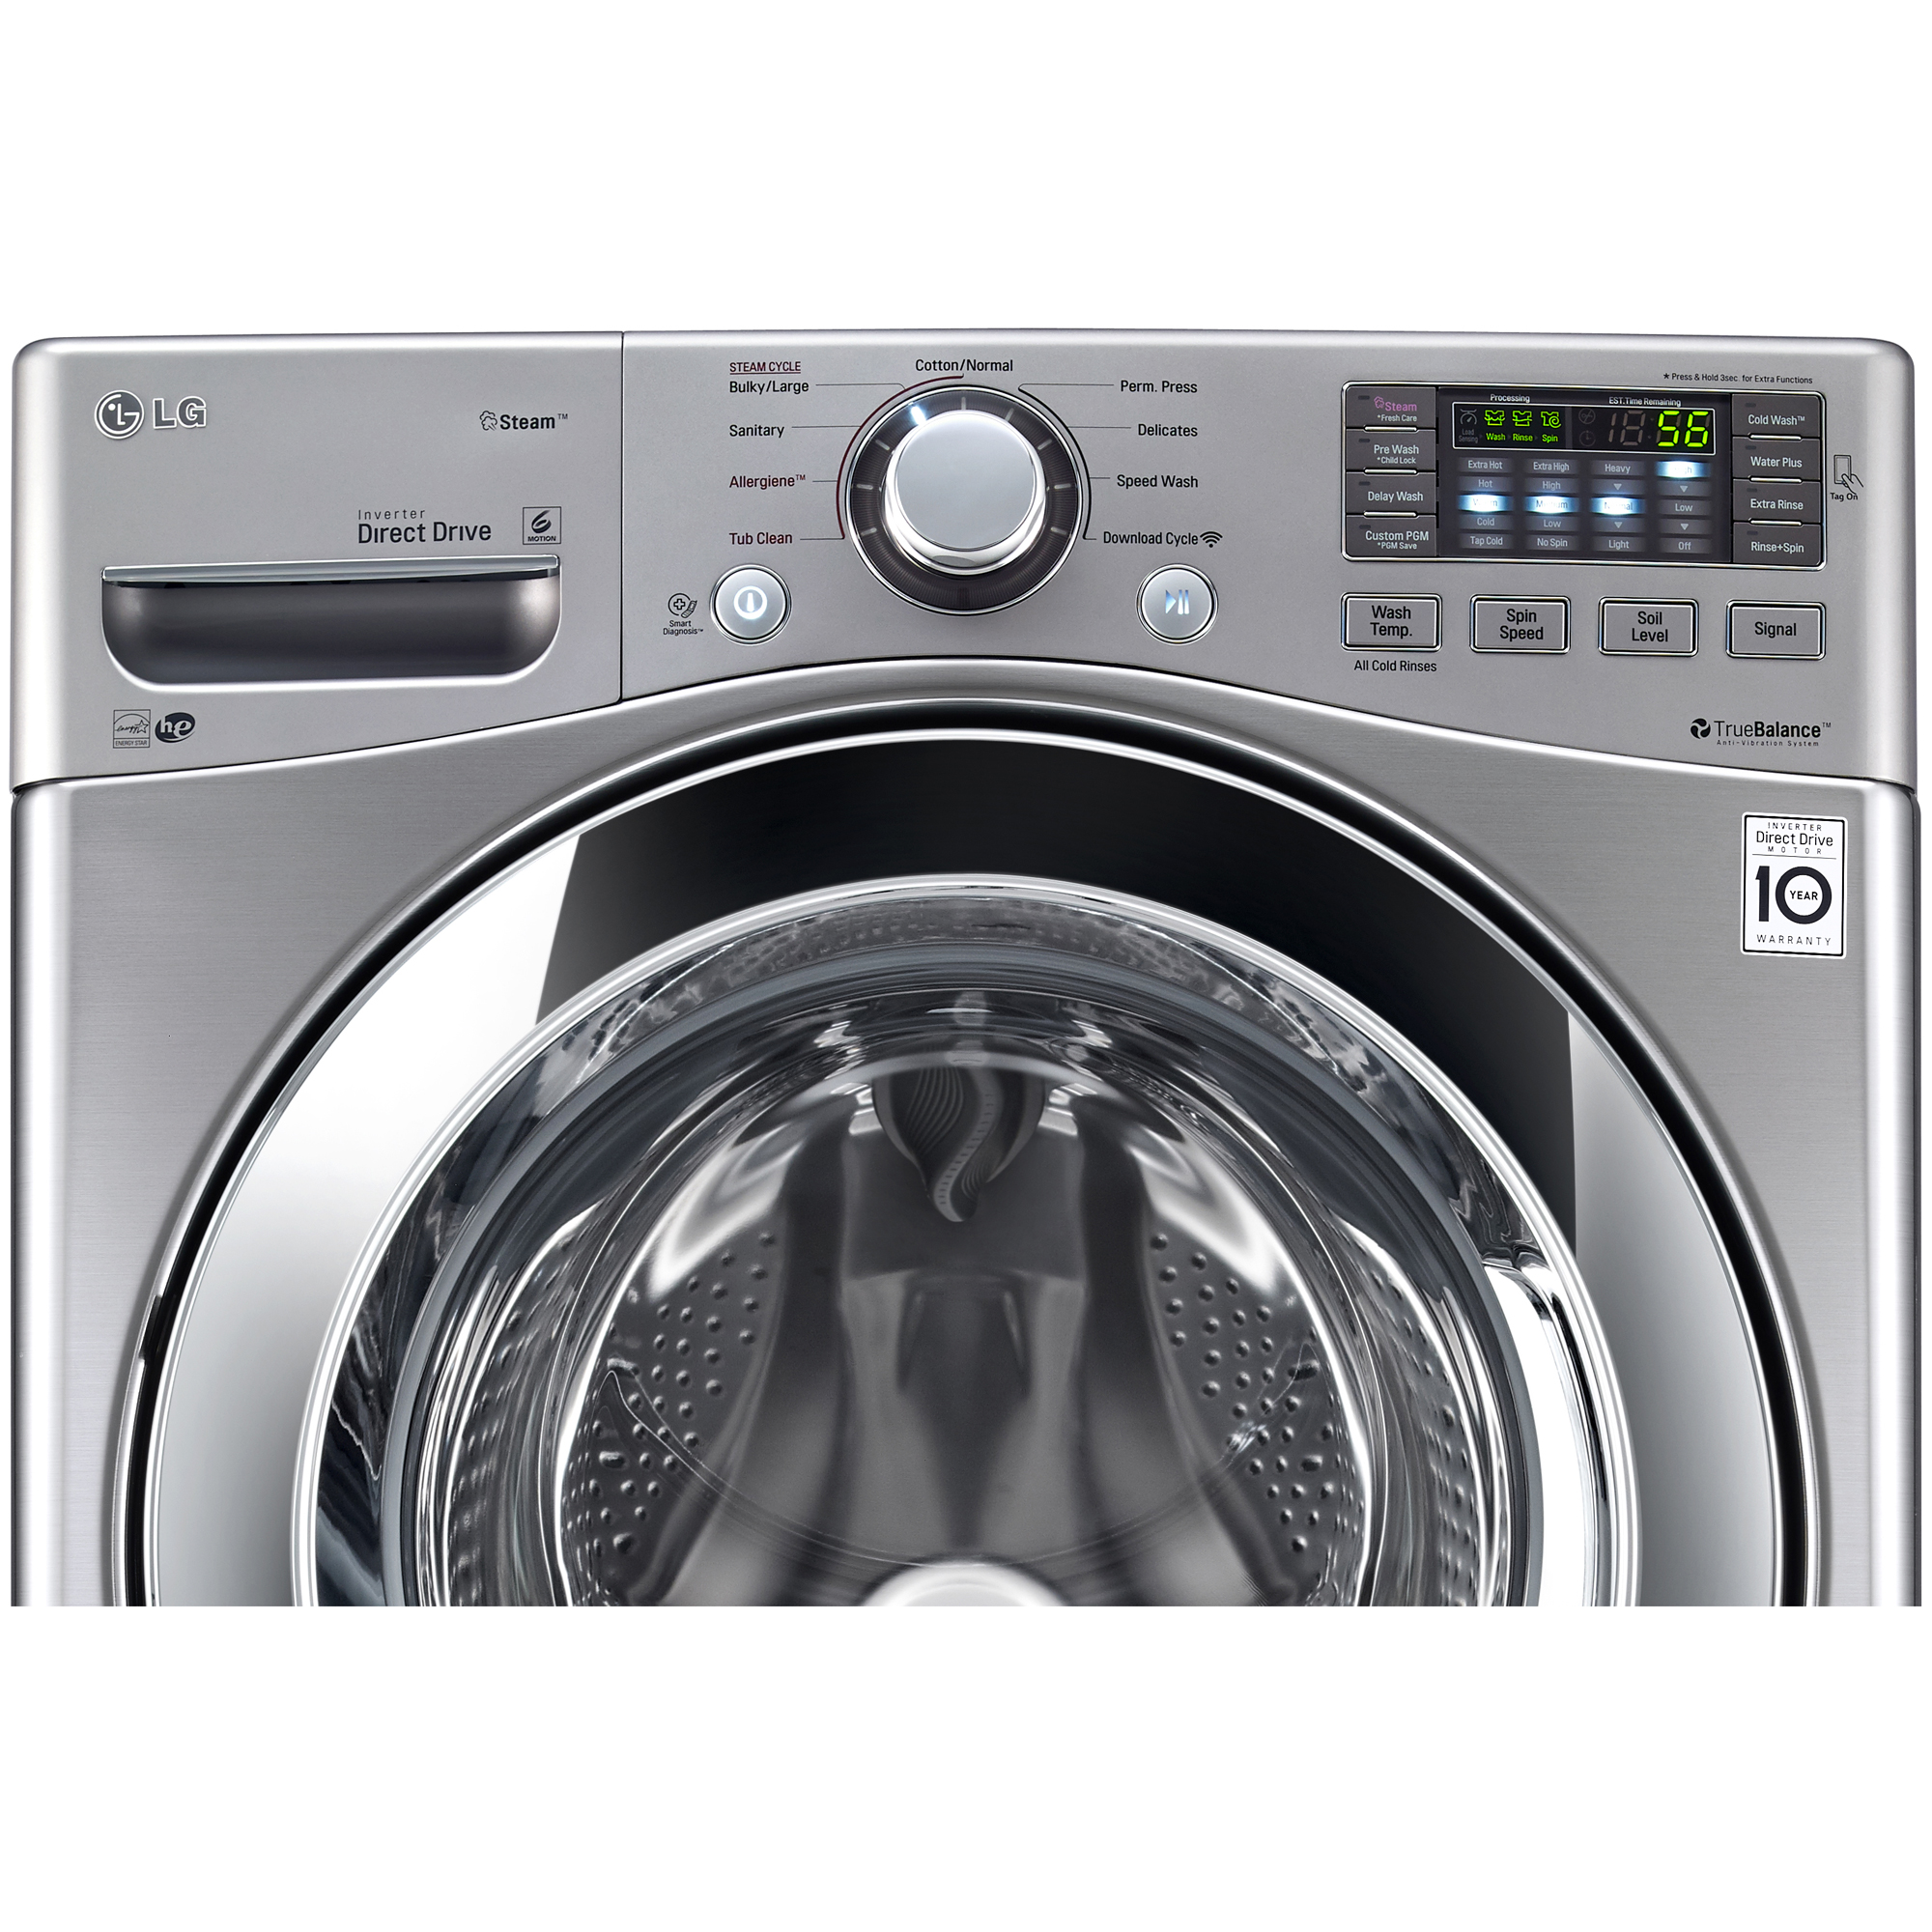 LG WM3370HVA 4.3 cu. ft. Ultra Large Capacity Graphite Steel Front Load Washer with Steam